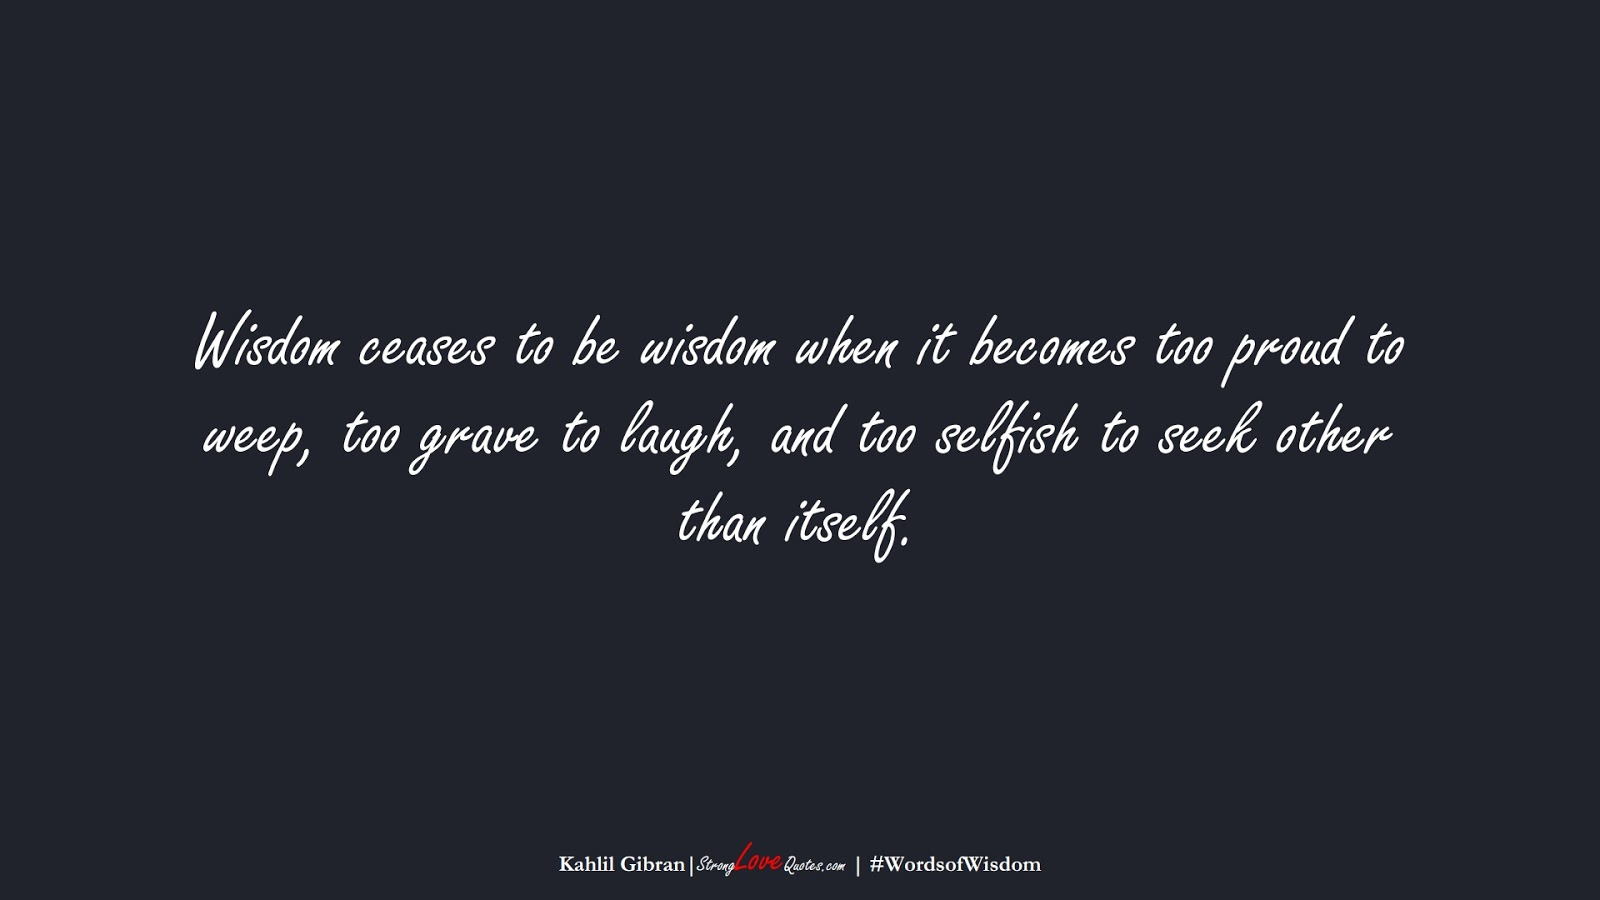 Wisdom ceases to be wisdom when it becomes too proud to weep, too grave to laugh, and too selfish to seek other than itself. (Kahlil Gibran);  #WordsofWisdom